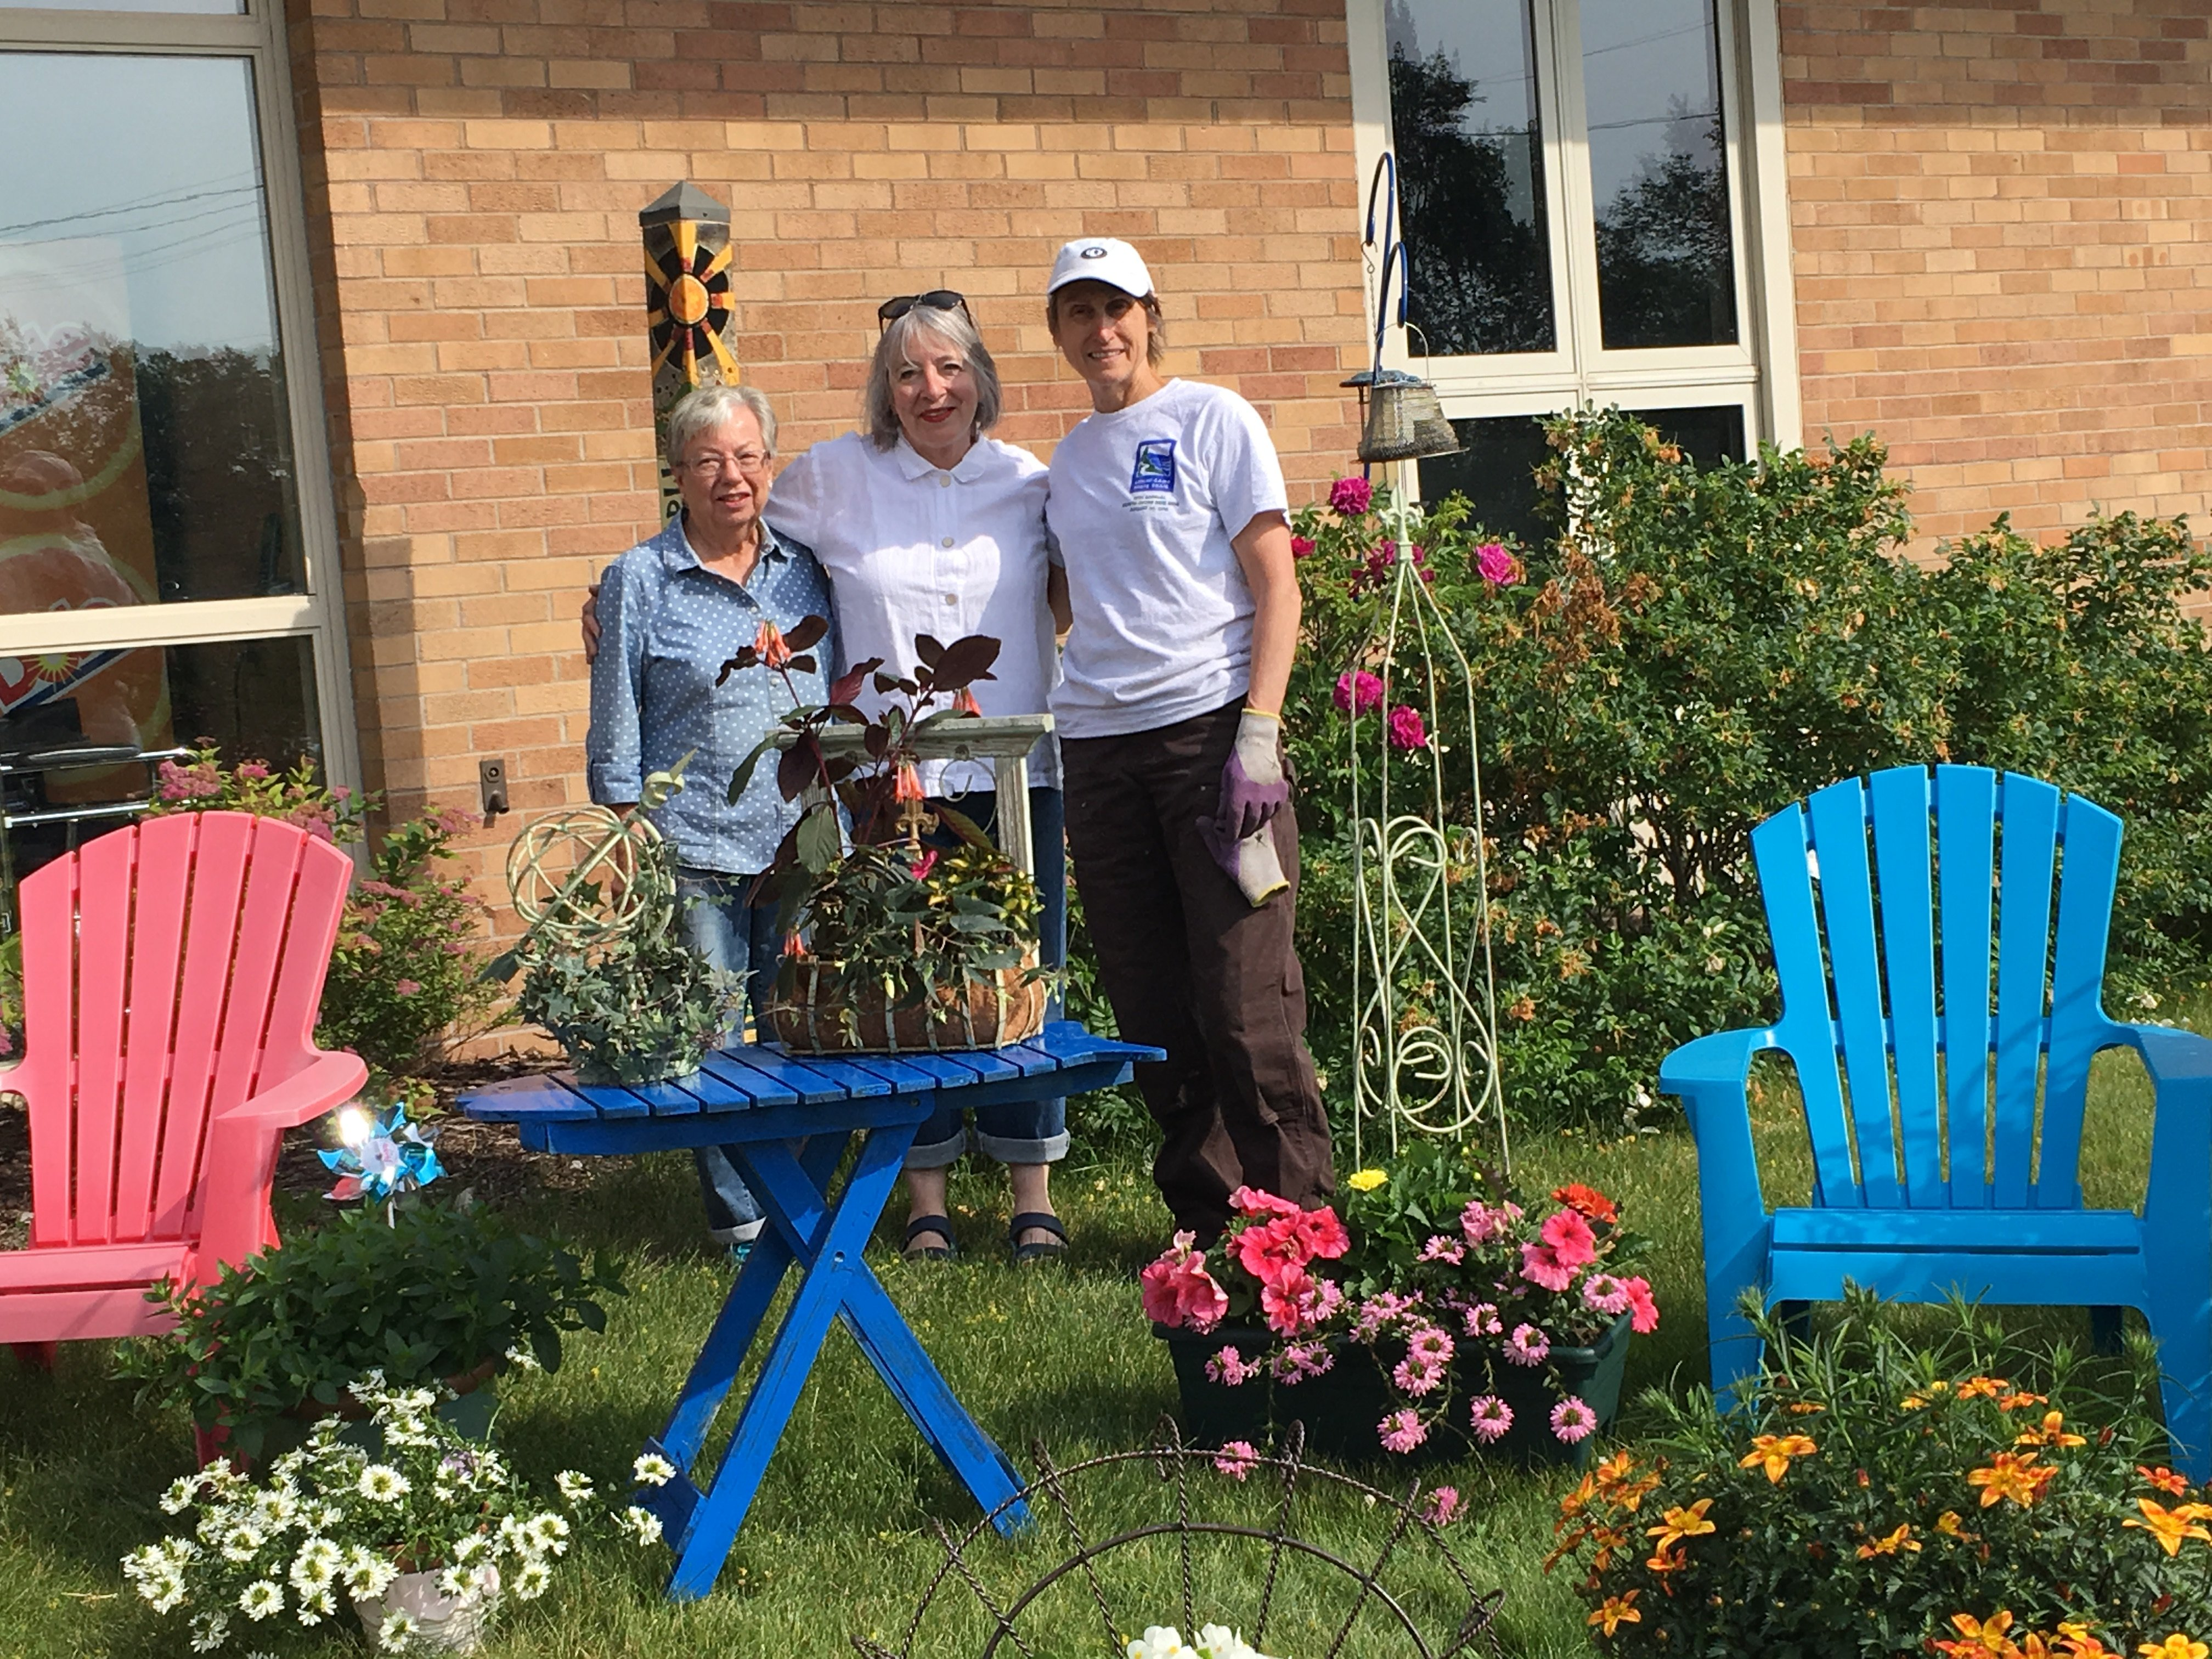 The West End Garden Club, will hold their annual flower show on Saturday, July 20.